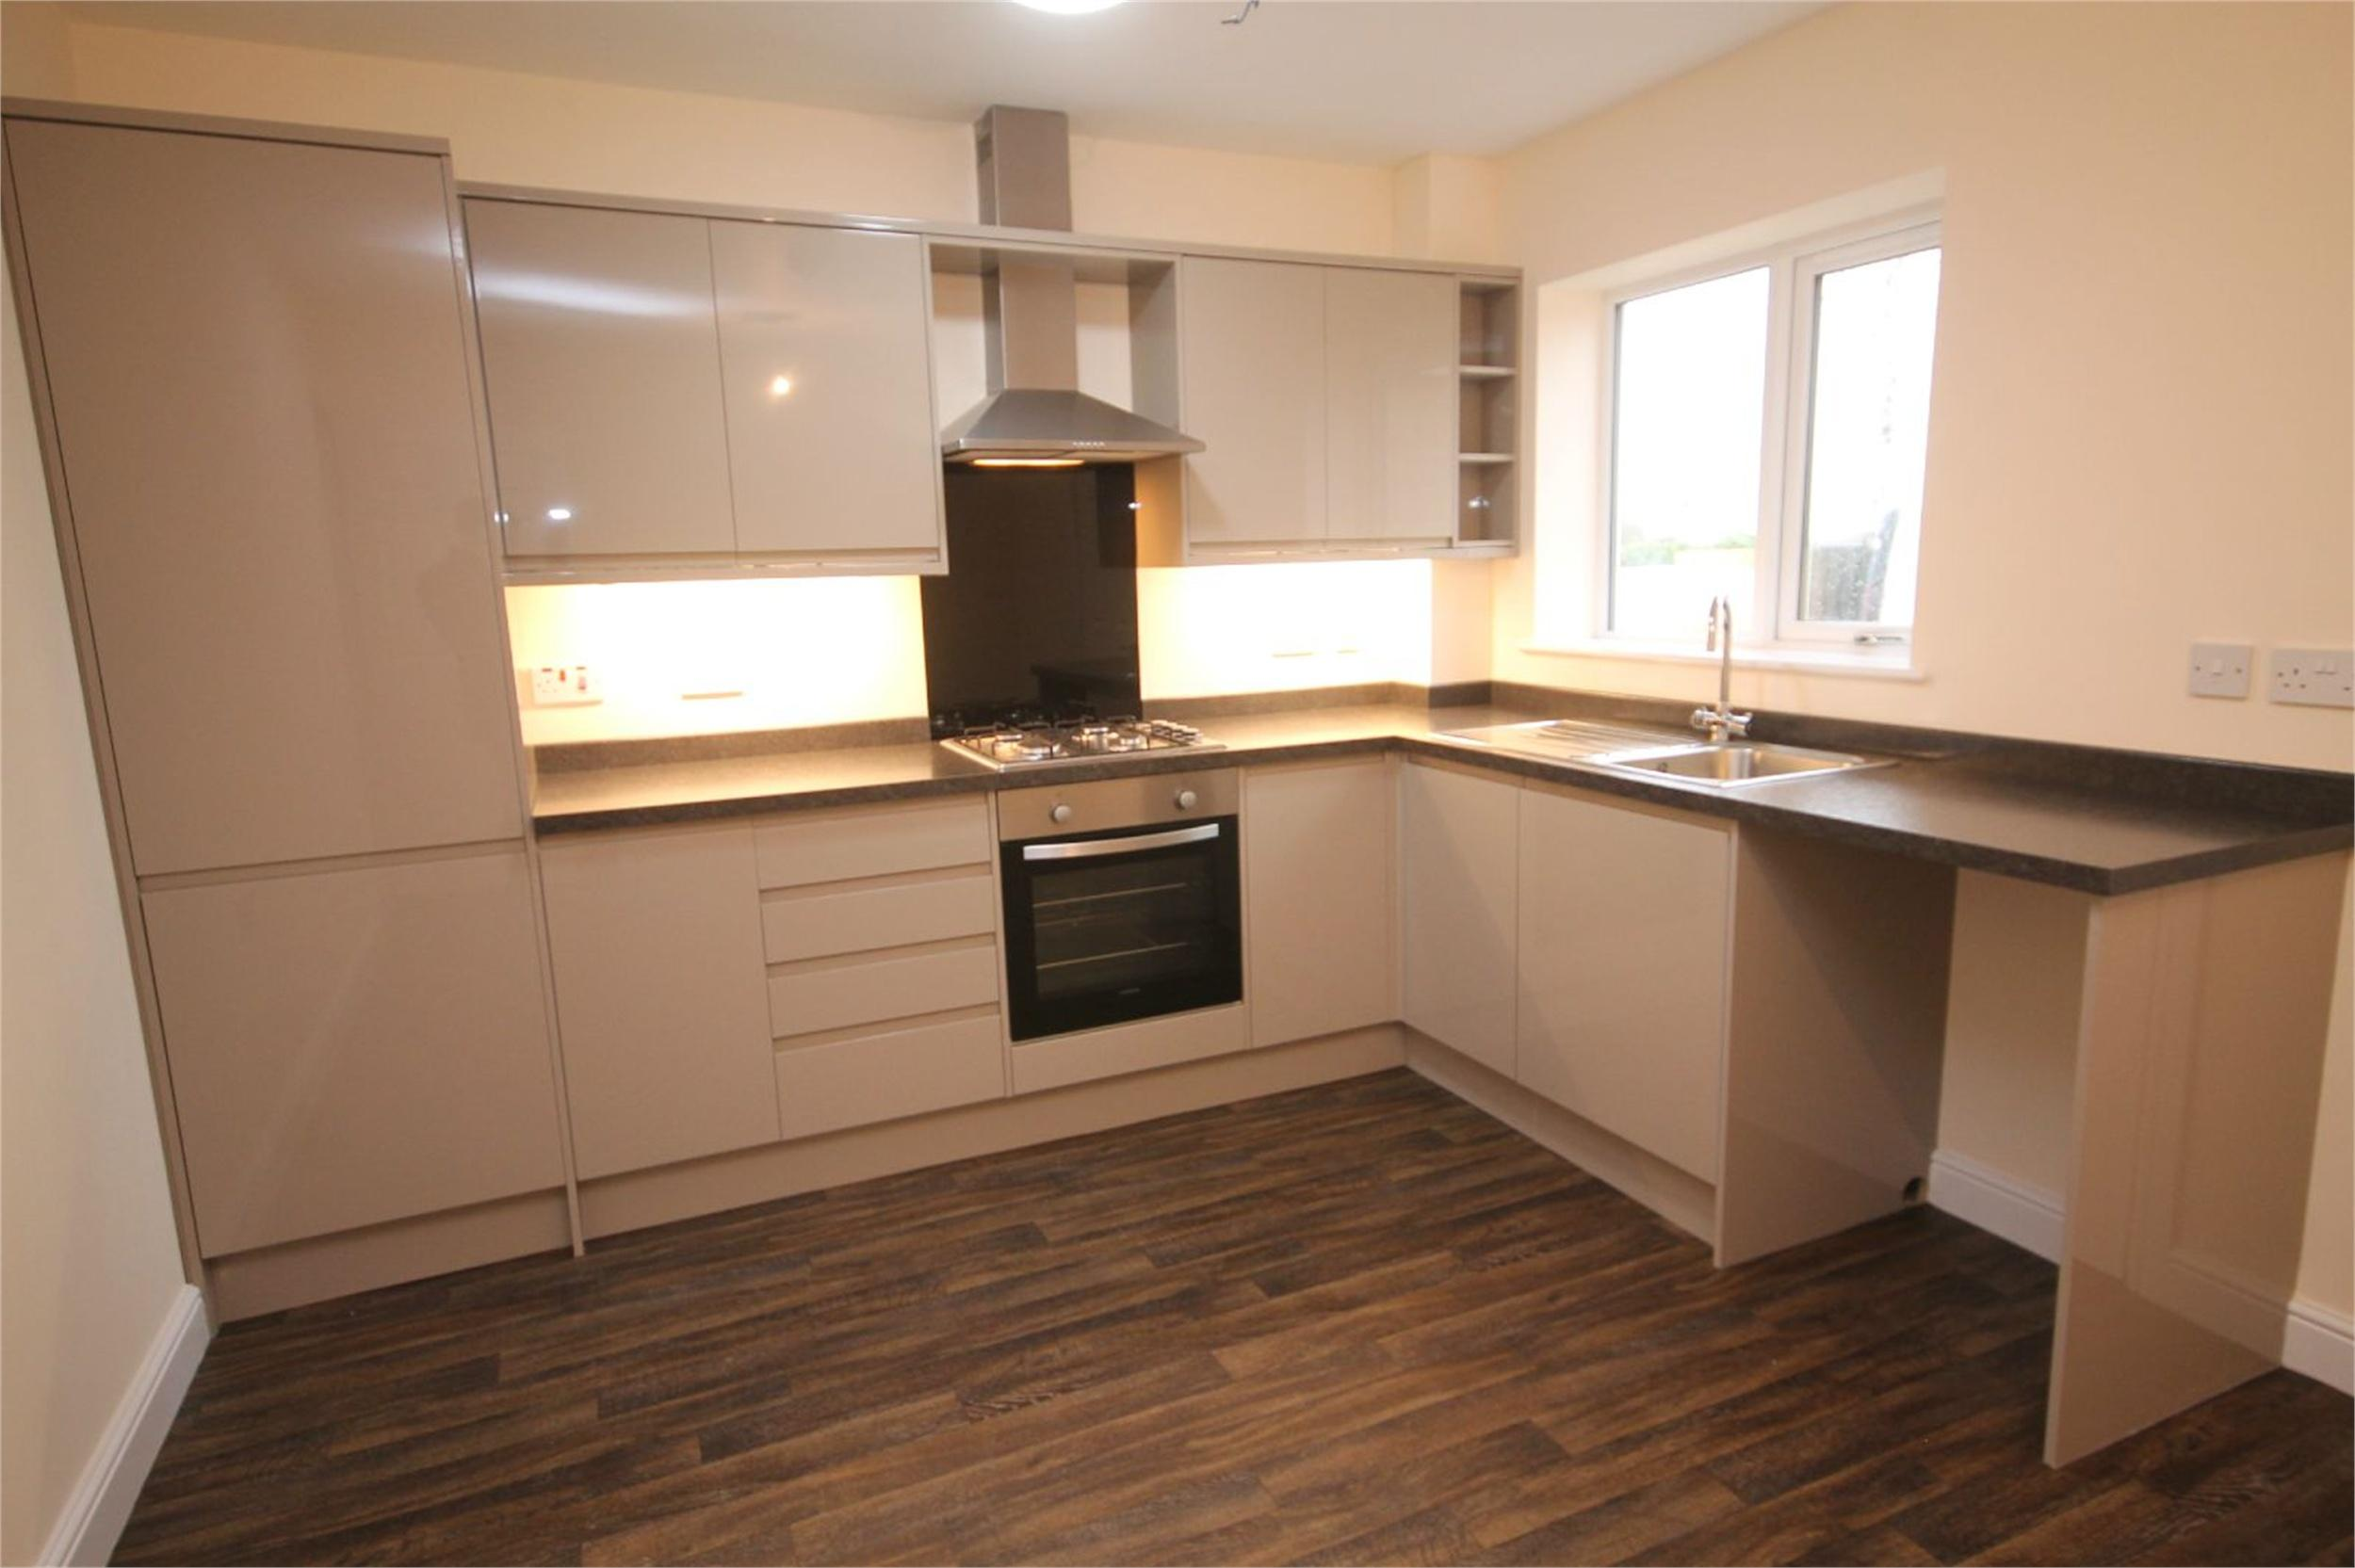 Whitegates Barnsley 3 Bedroom Semi Detached House For Sale In Monsal View Athersley South